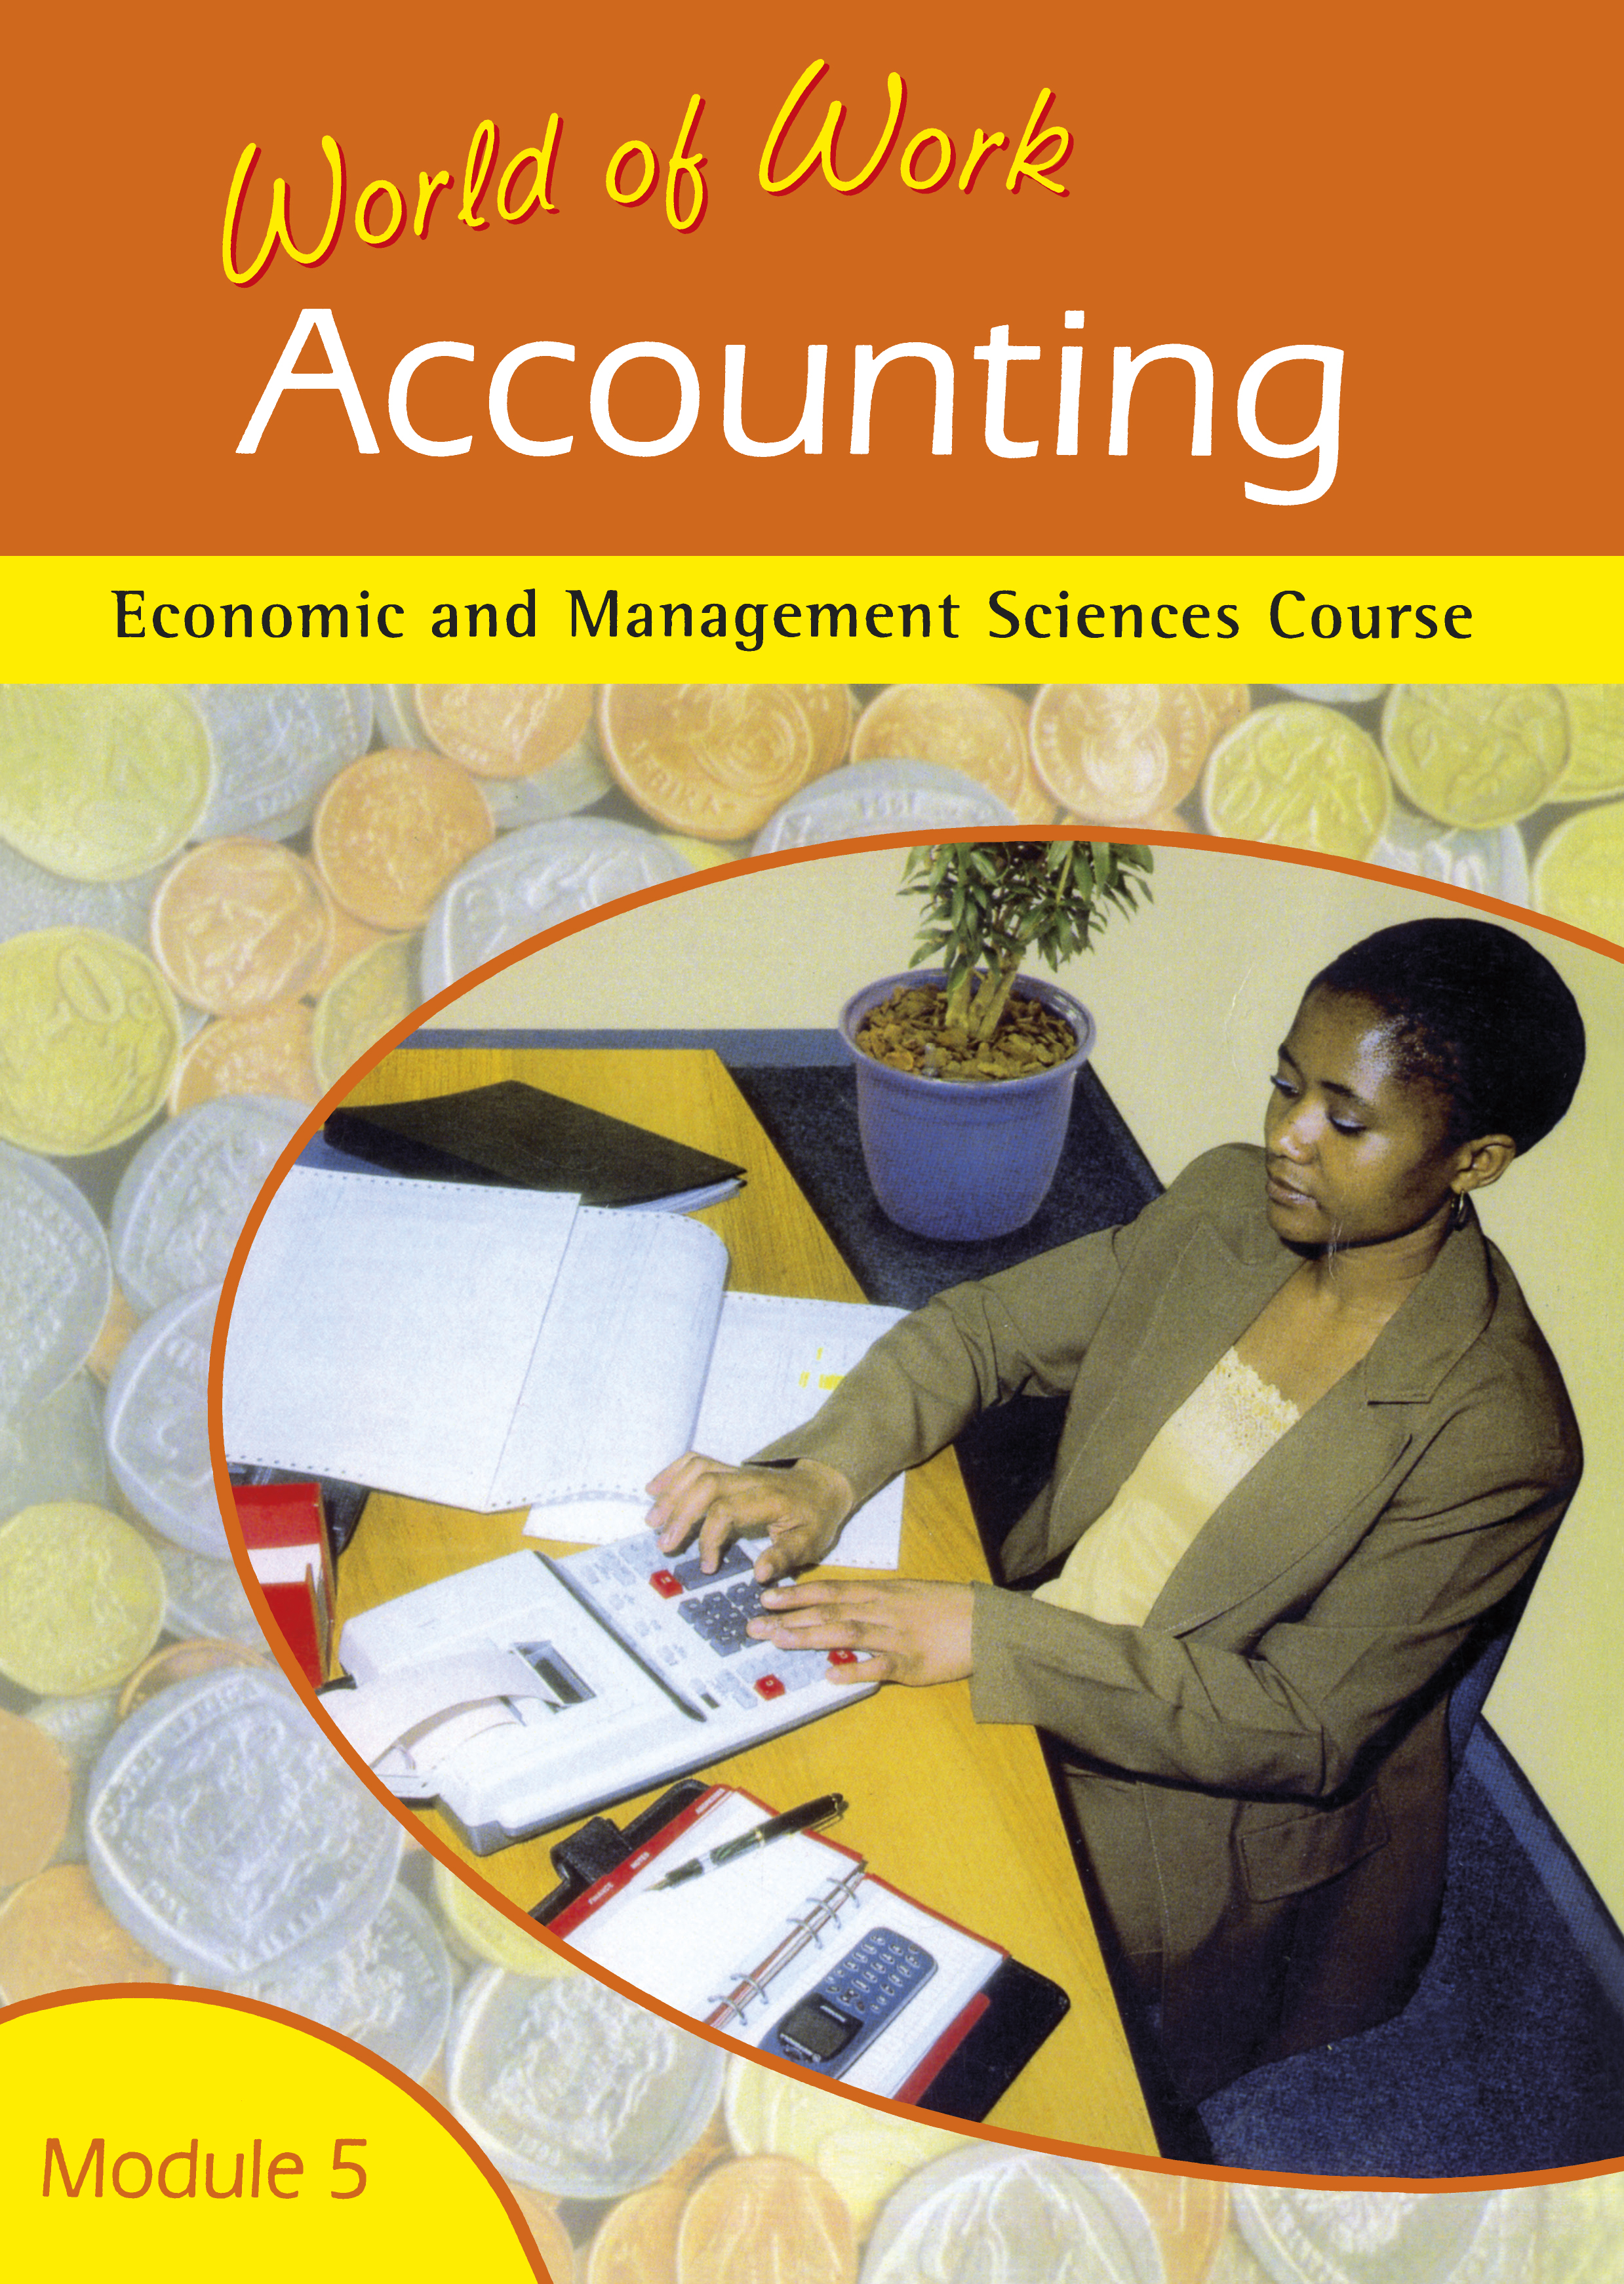 Picture of World of work module 5: Accounting